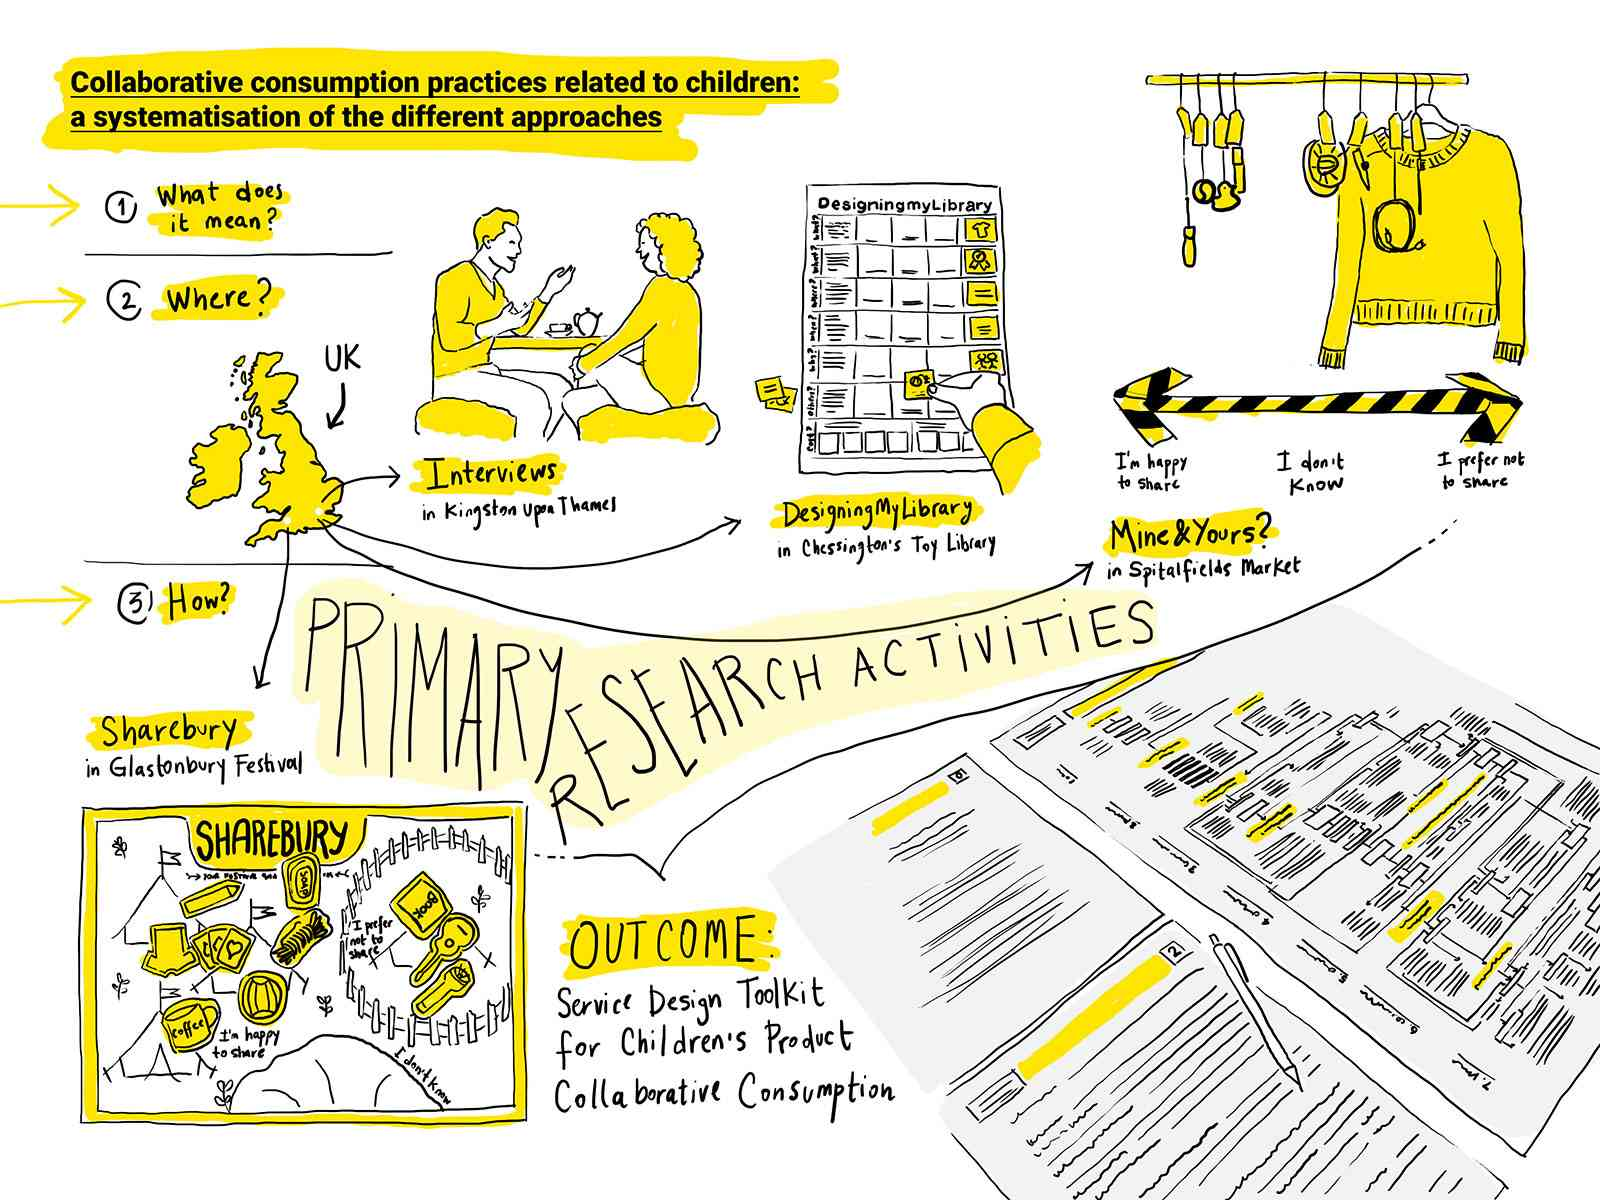 Service Design Toolkit for Collaborative Consumption of Children's Products - By Maria Fernandez Marinovic